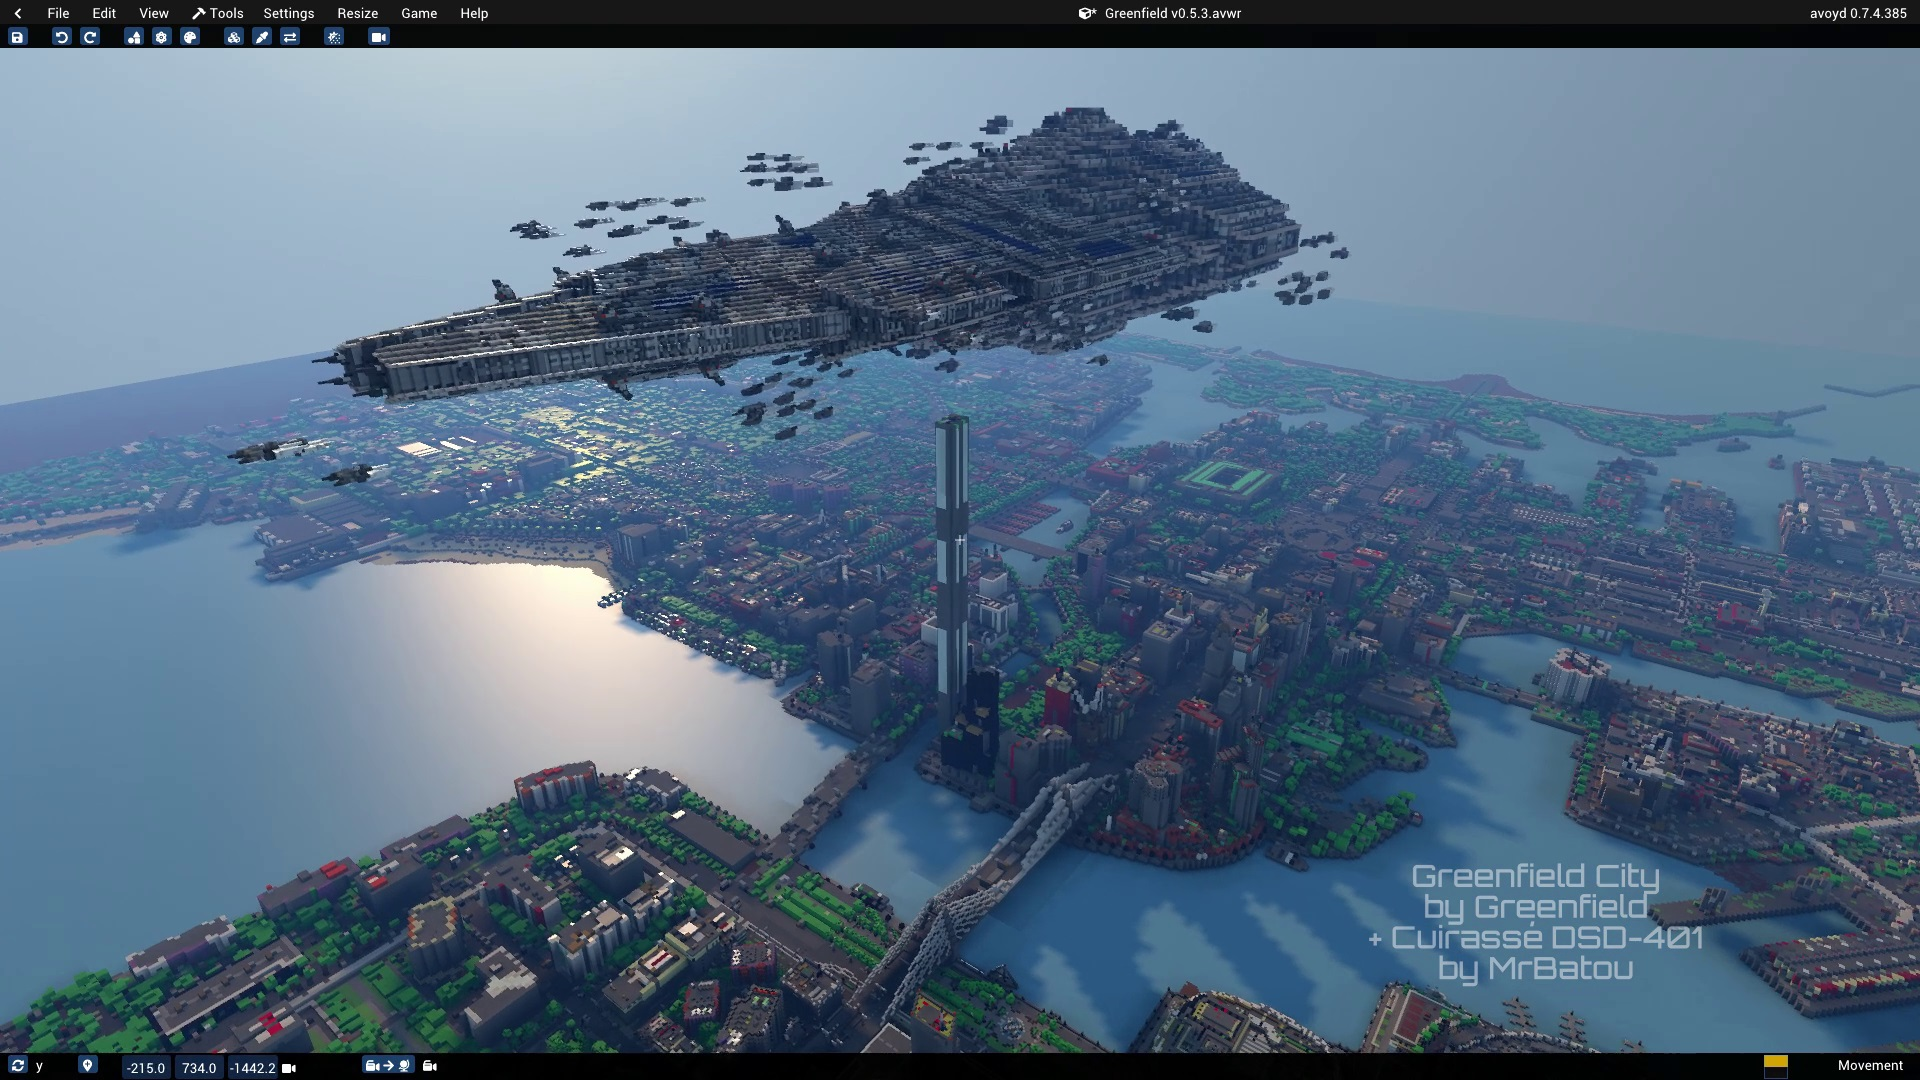 Avoyd Voxel Editor screenshot - Mash-up of Minecraft maps Greenfield city and Cuirassé DSD-401 by MrBatou imported into Avoyd and combined together using the voxel editor tool 'Save/Load world as paste brush'.